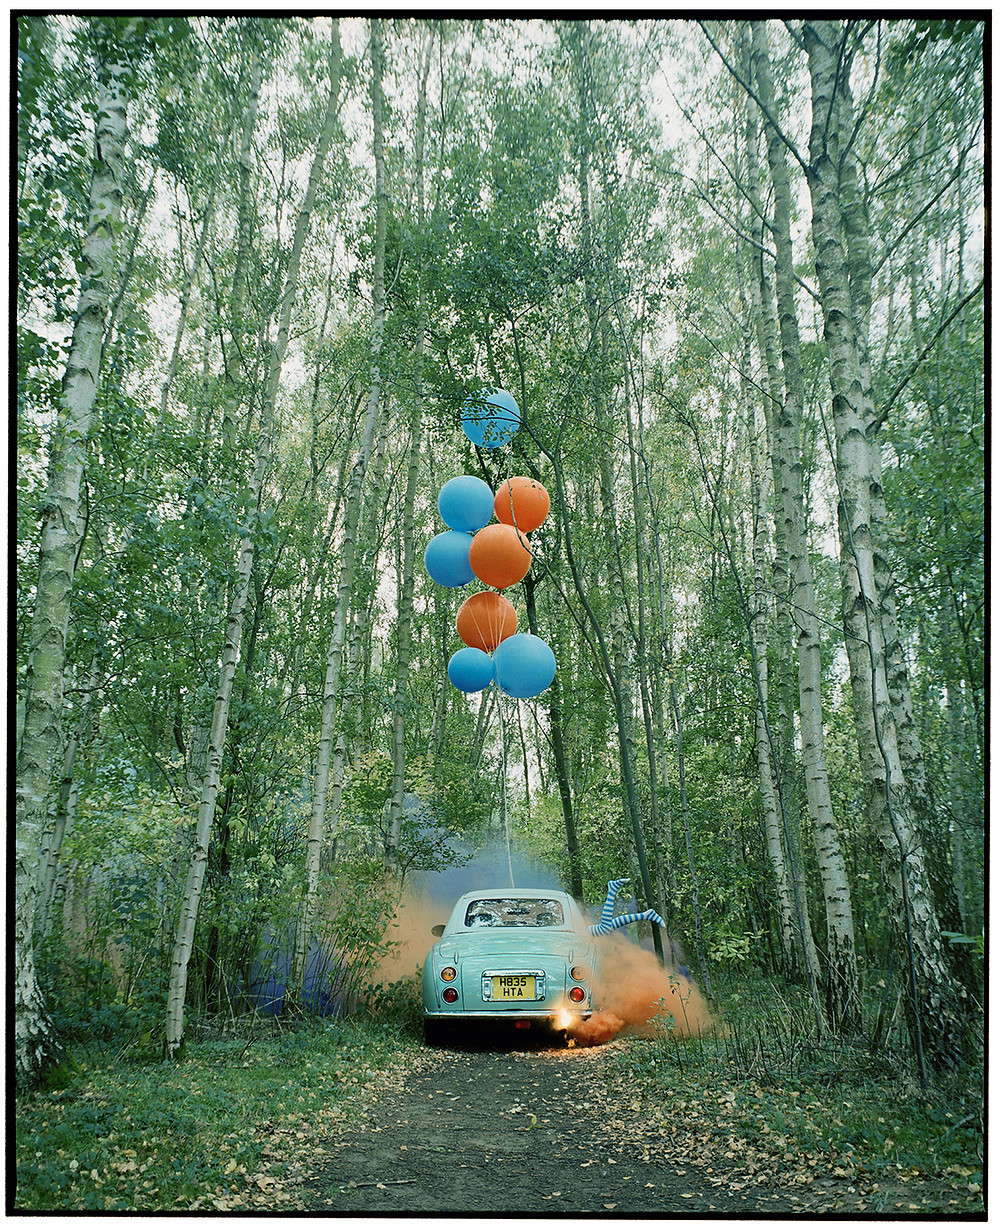 Photo from 'The Twins and the Green Car' series by Vikram Kushwah